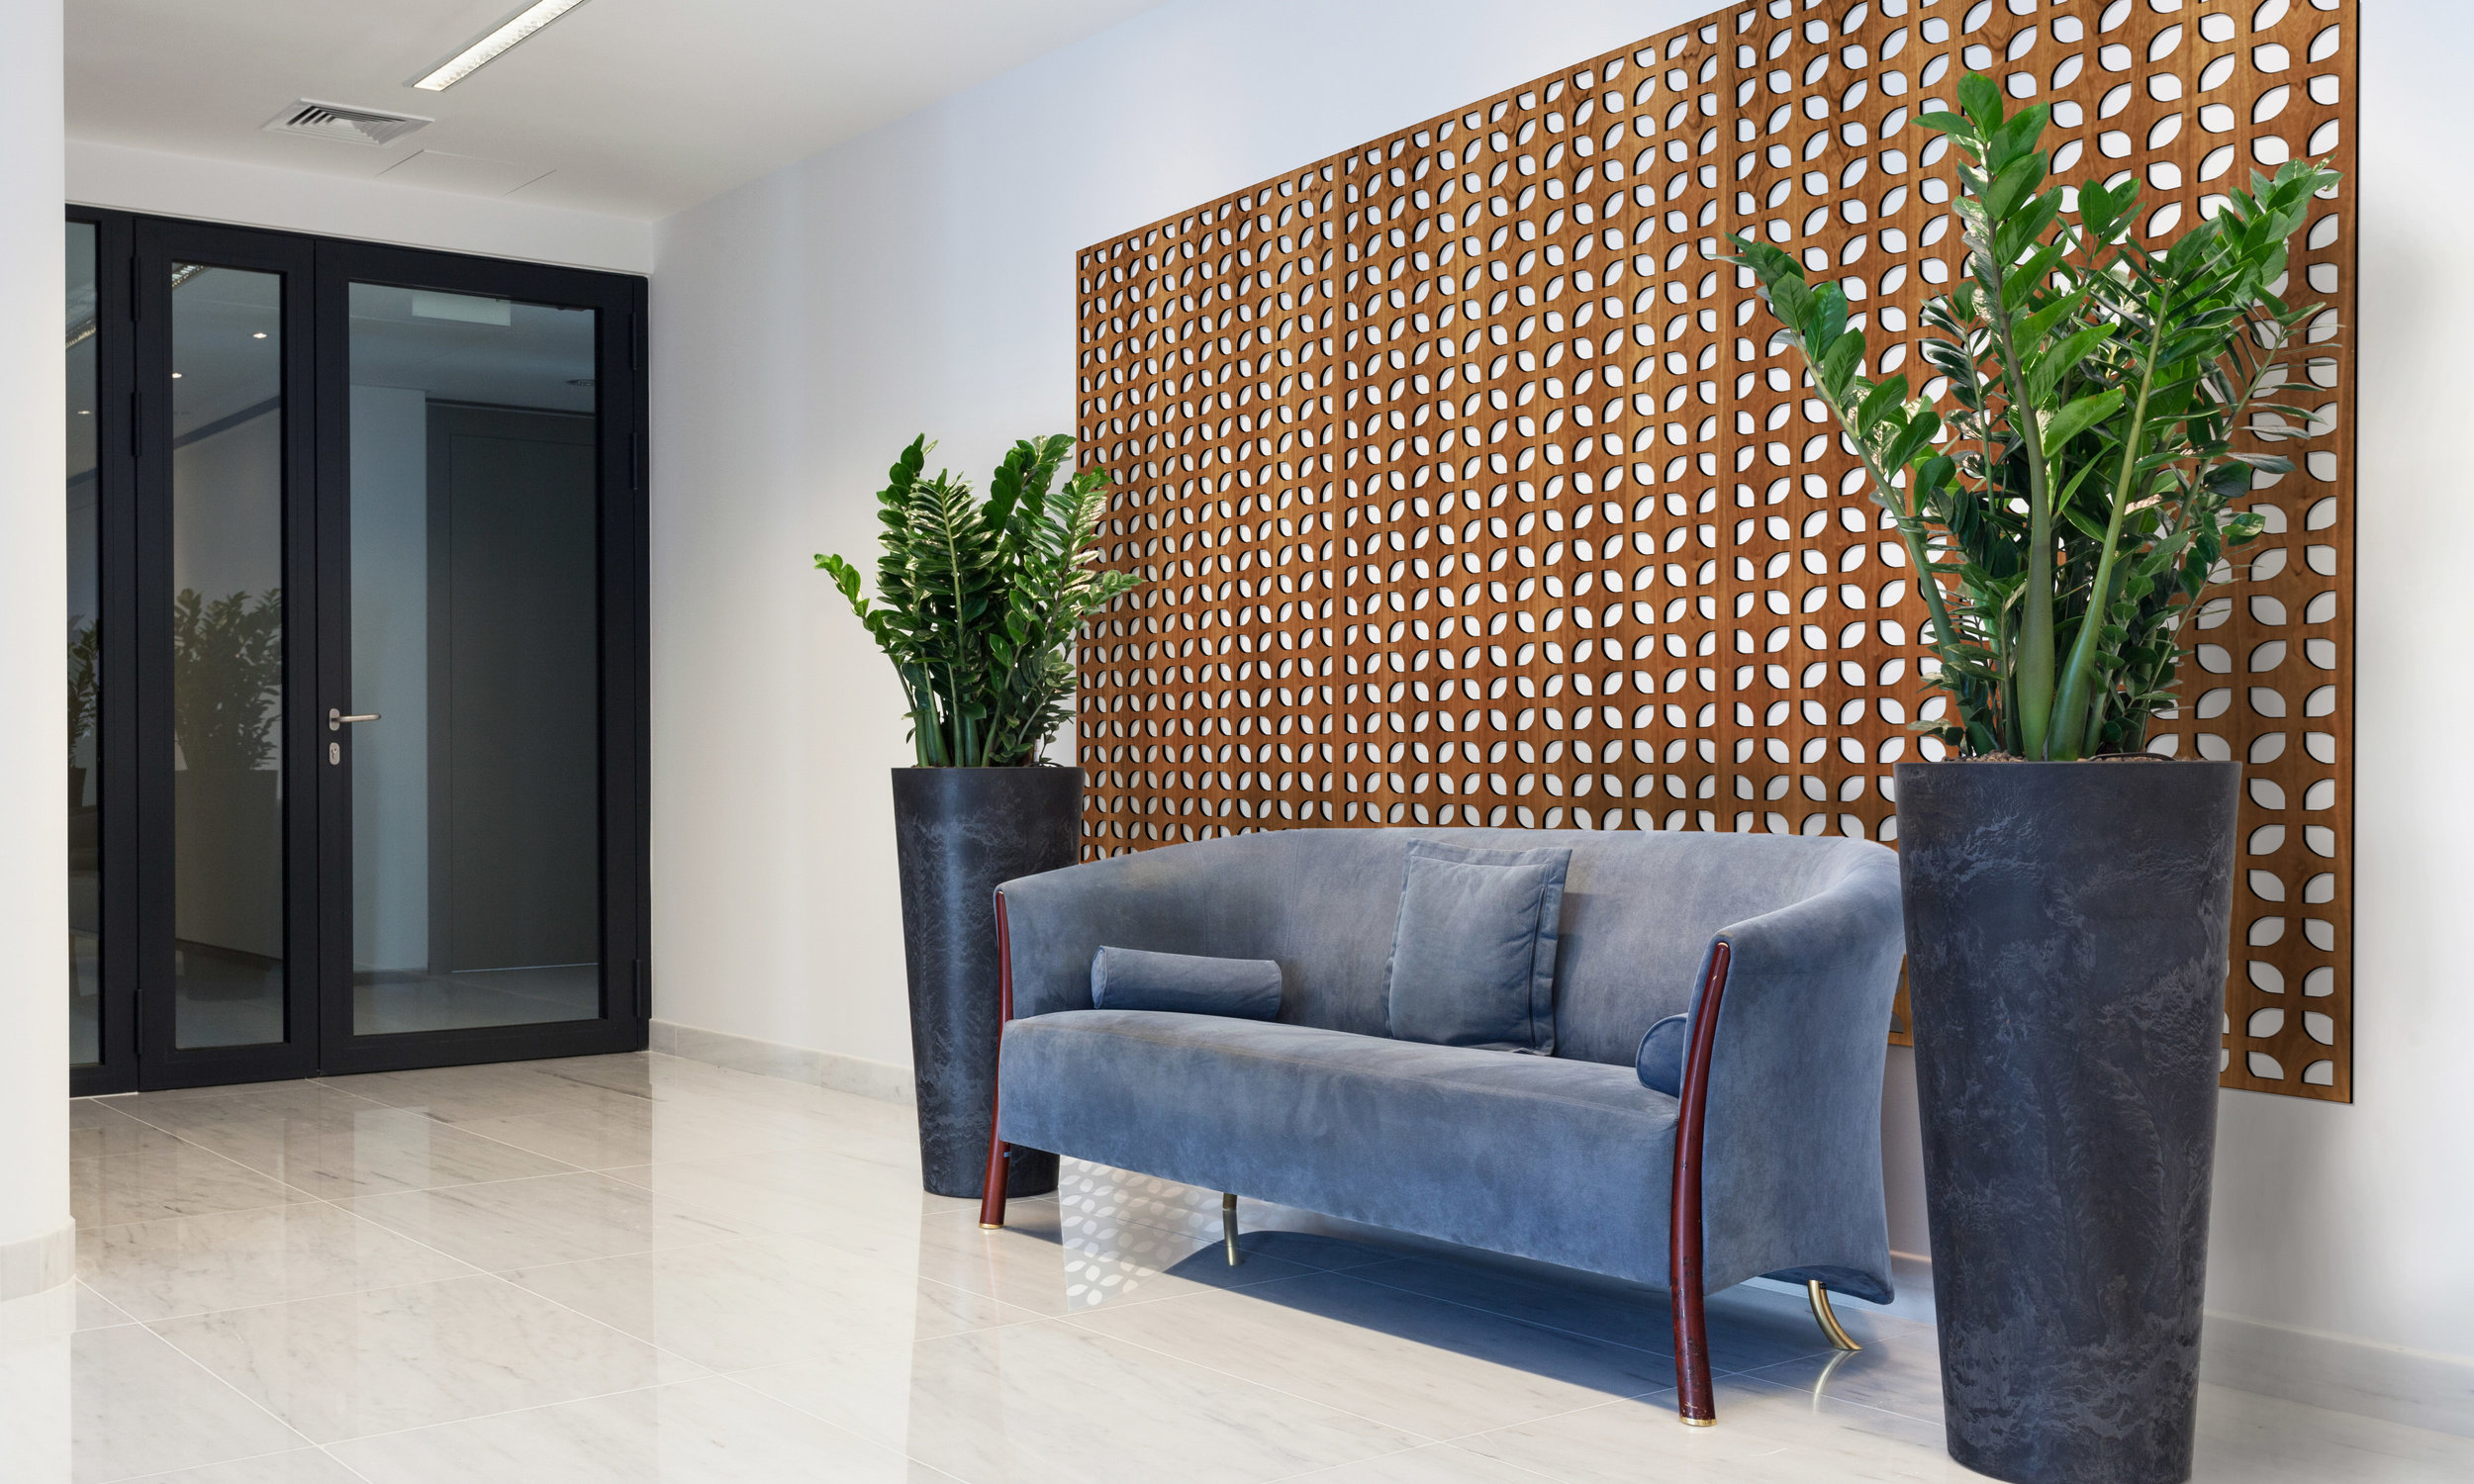 Installation Rendering A   Copenhagan decorative office wall panel - shown in Cherry